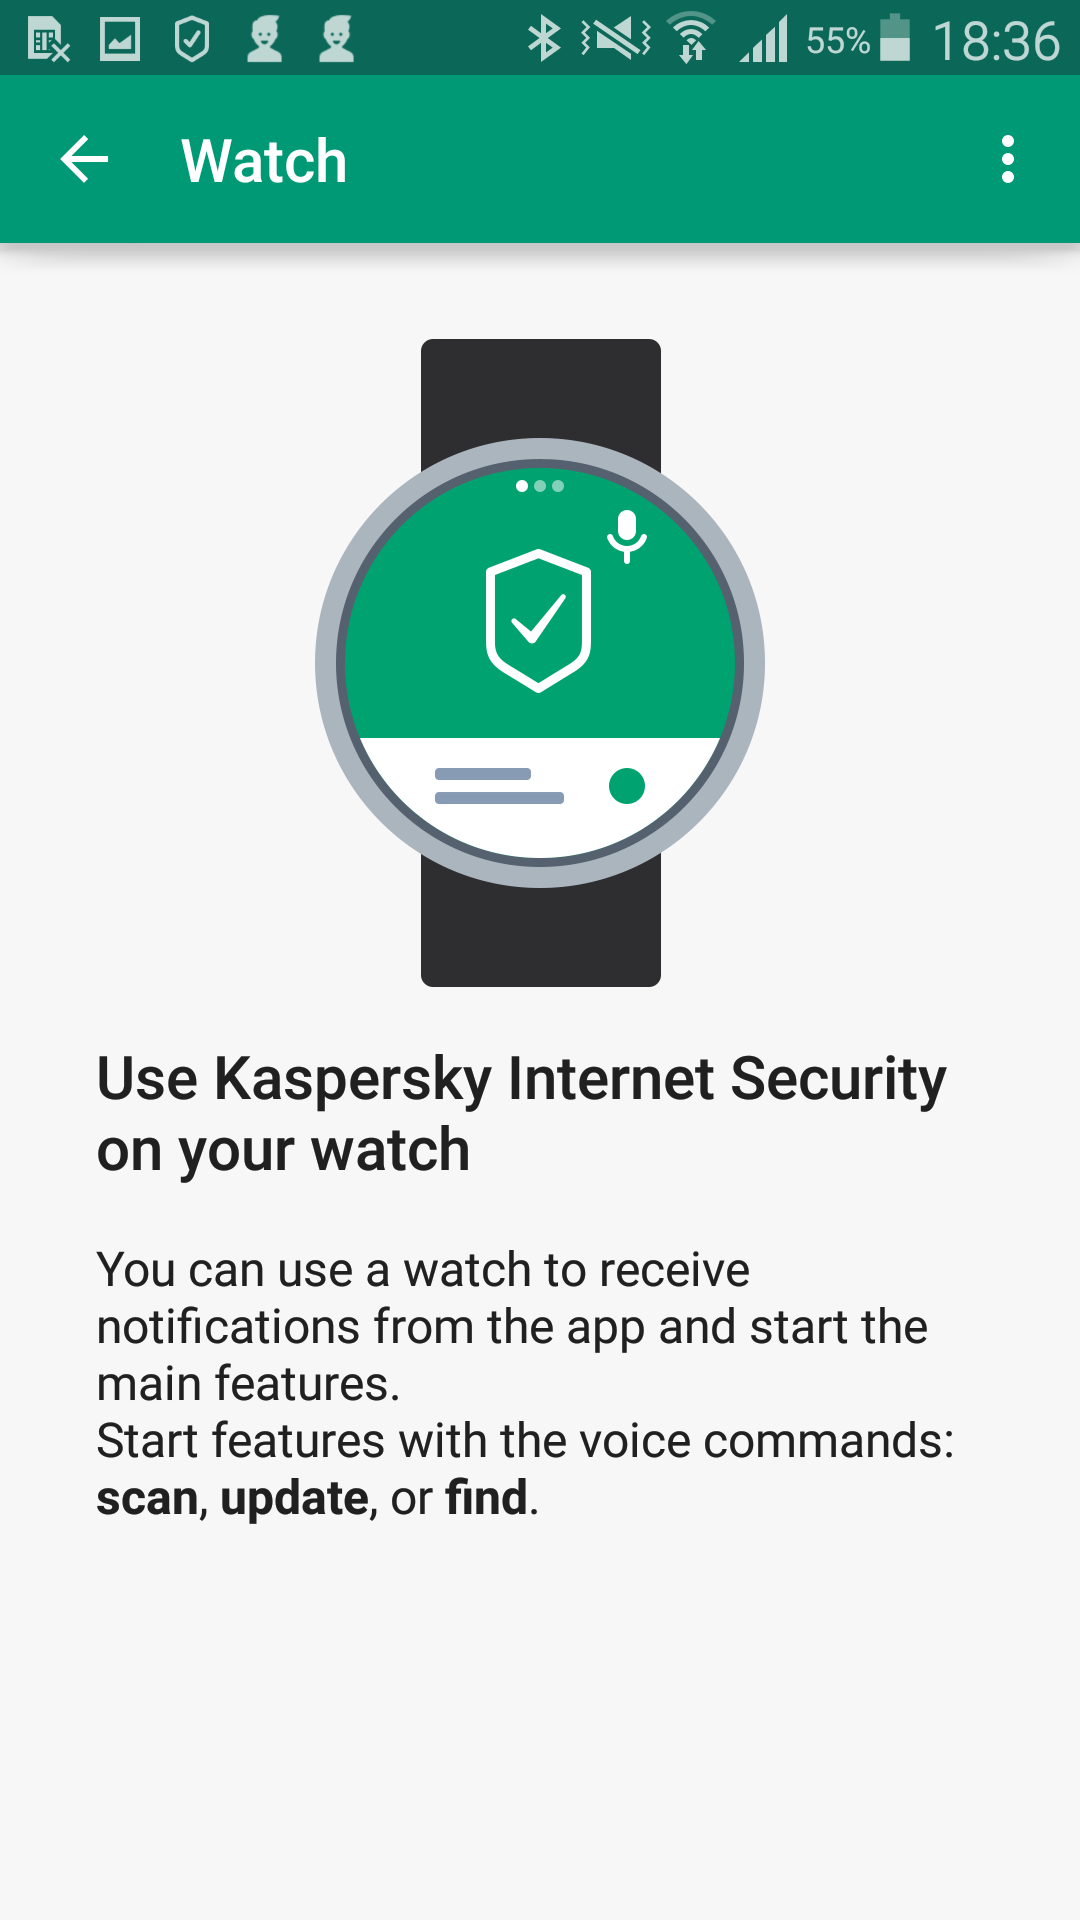 kaspersky free download for android